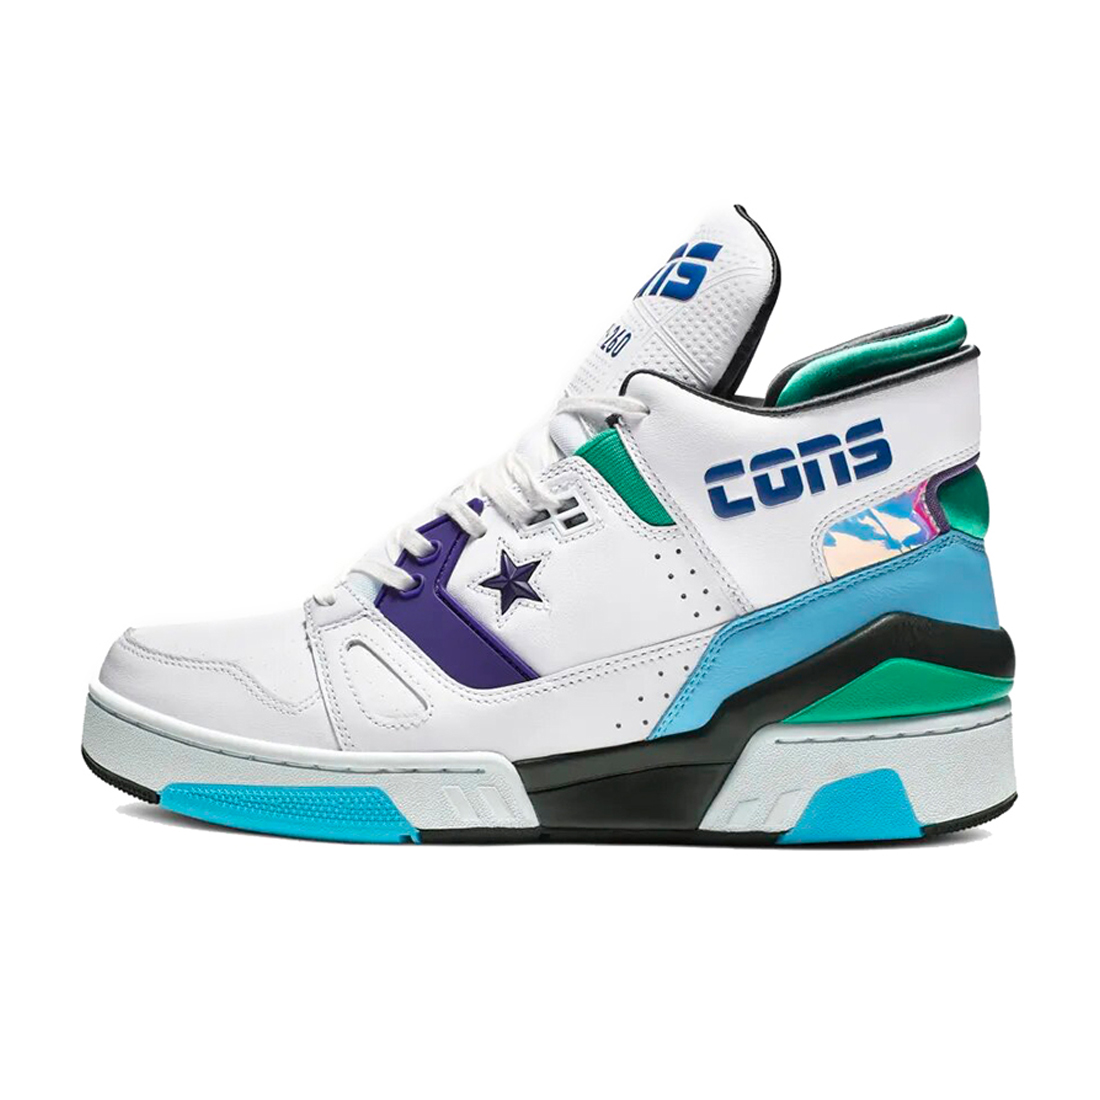 the lowest price Converse Erx 260 Jewel Mid White